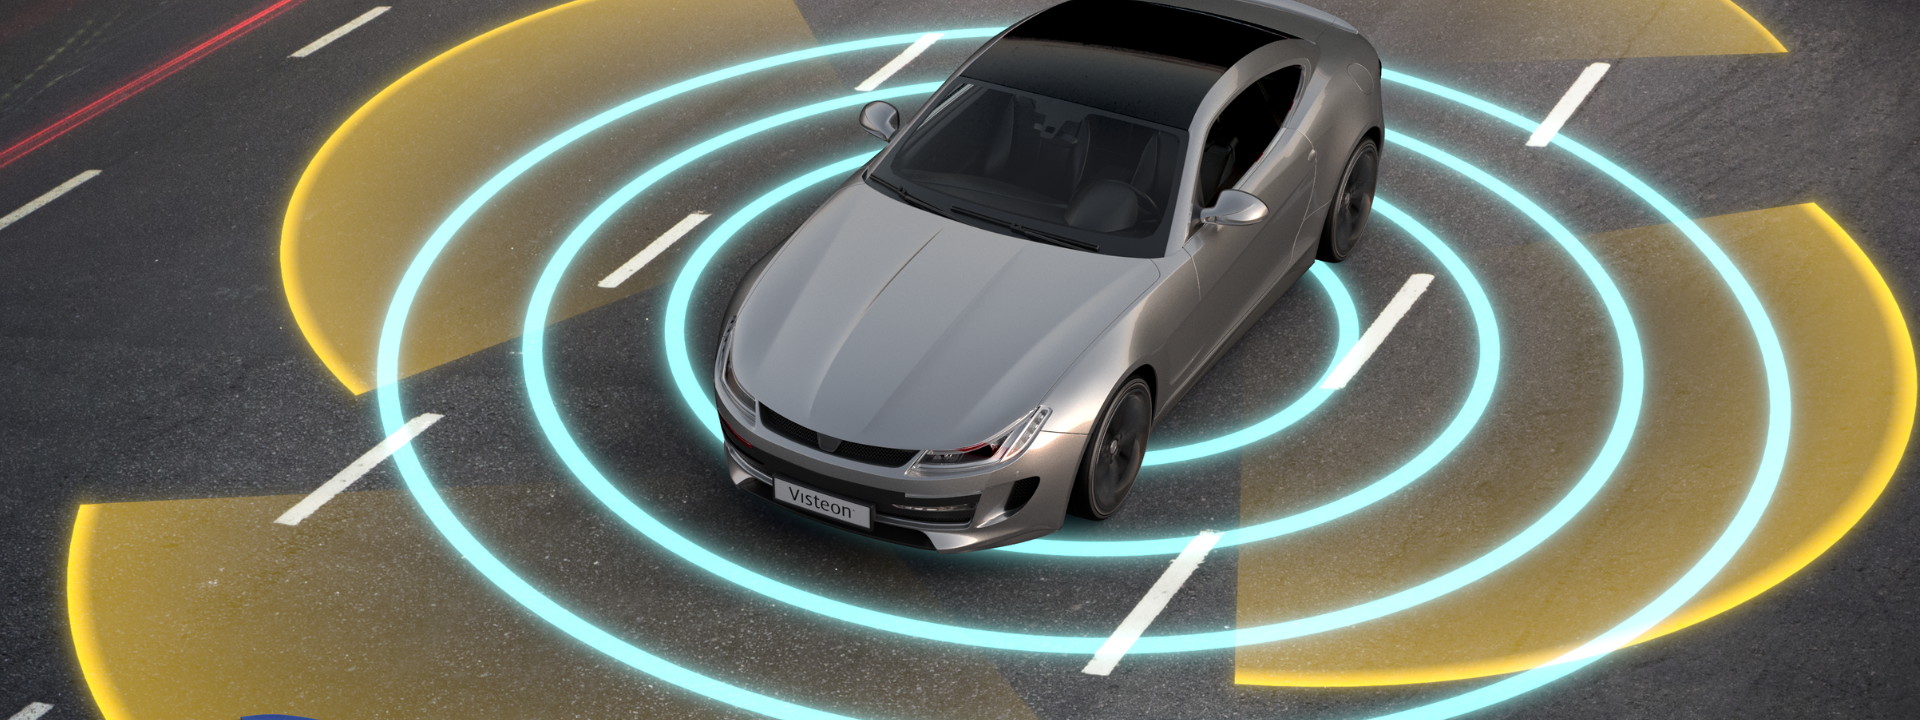 visteon-car-rendering-sensing-surroundings-on-road